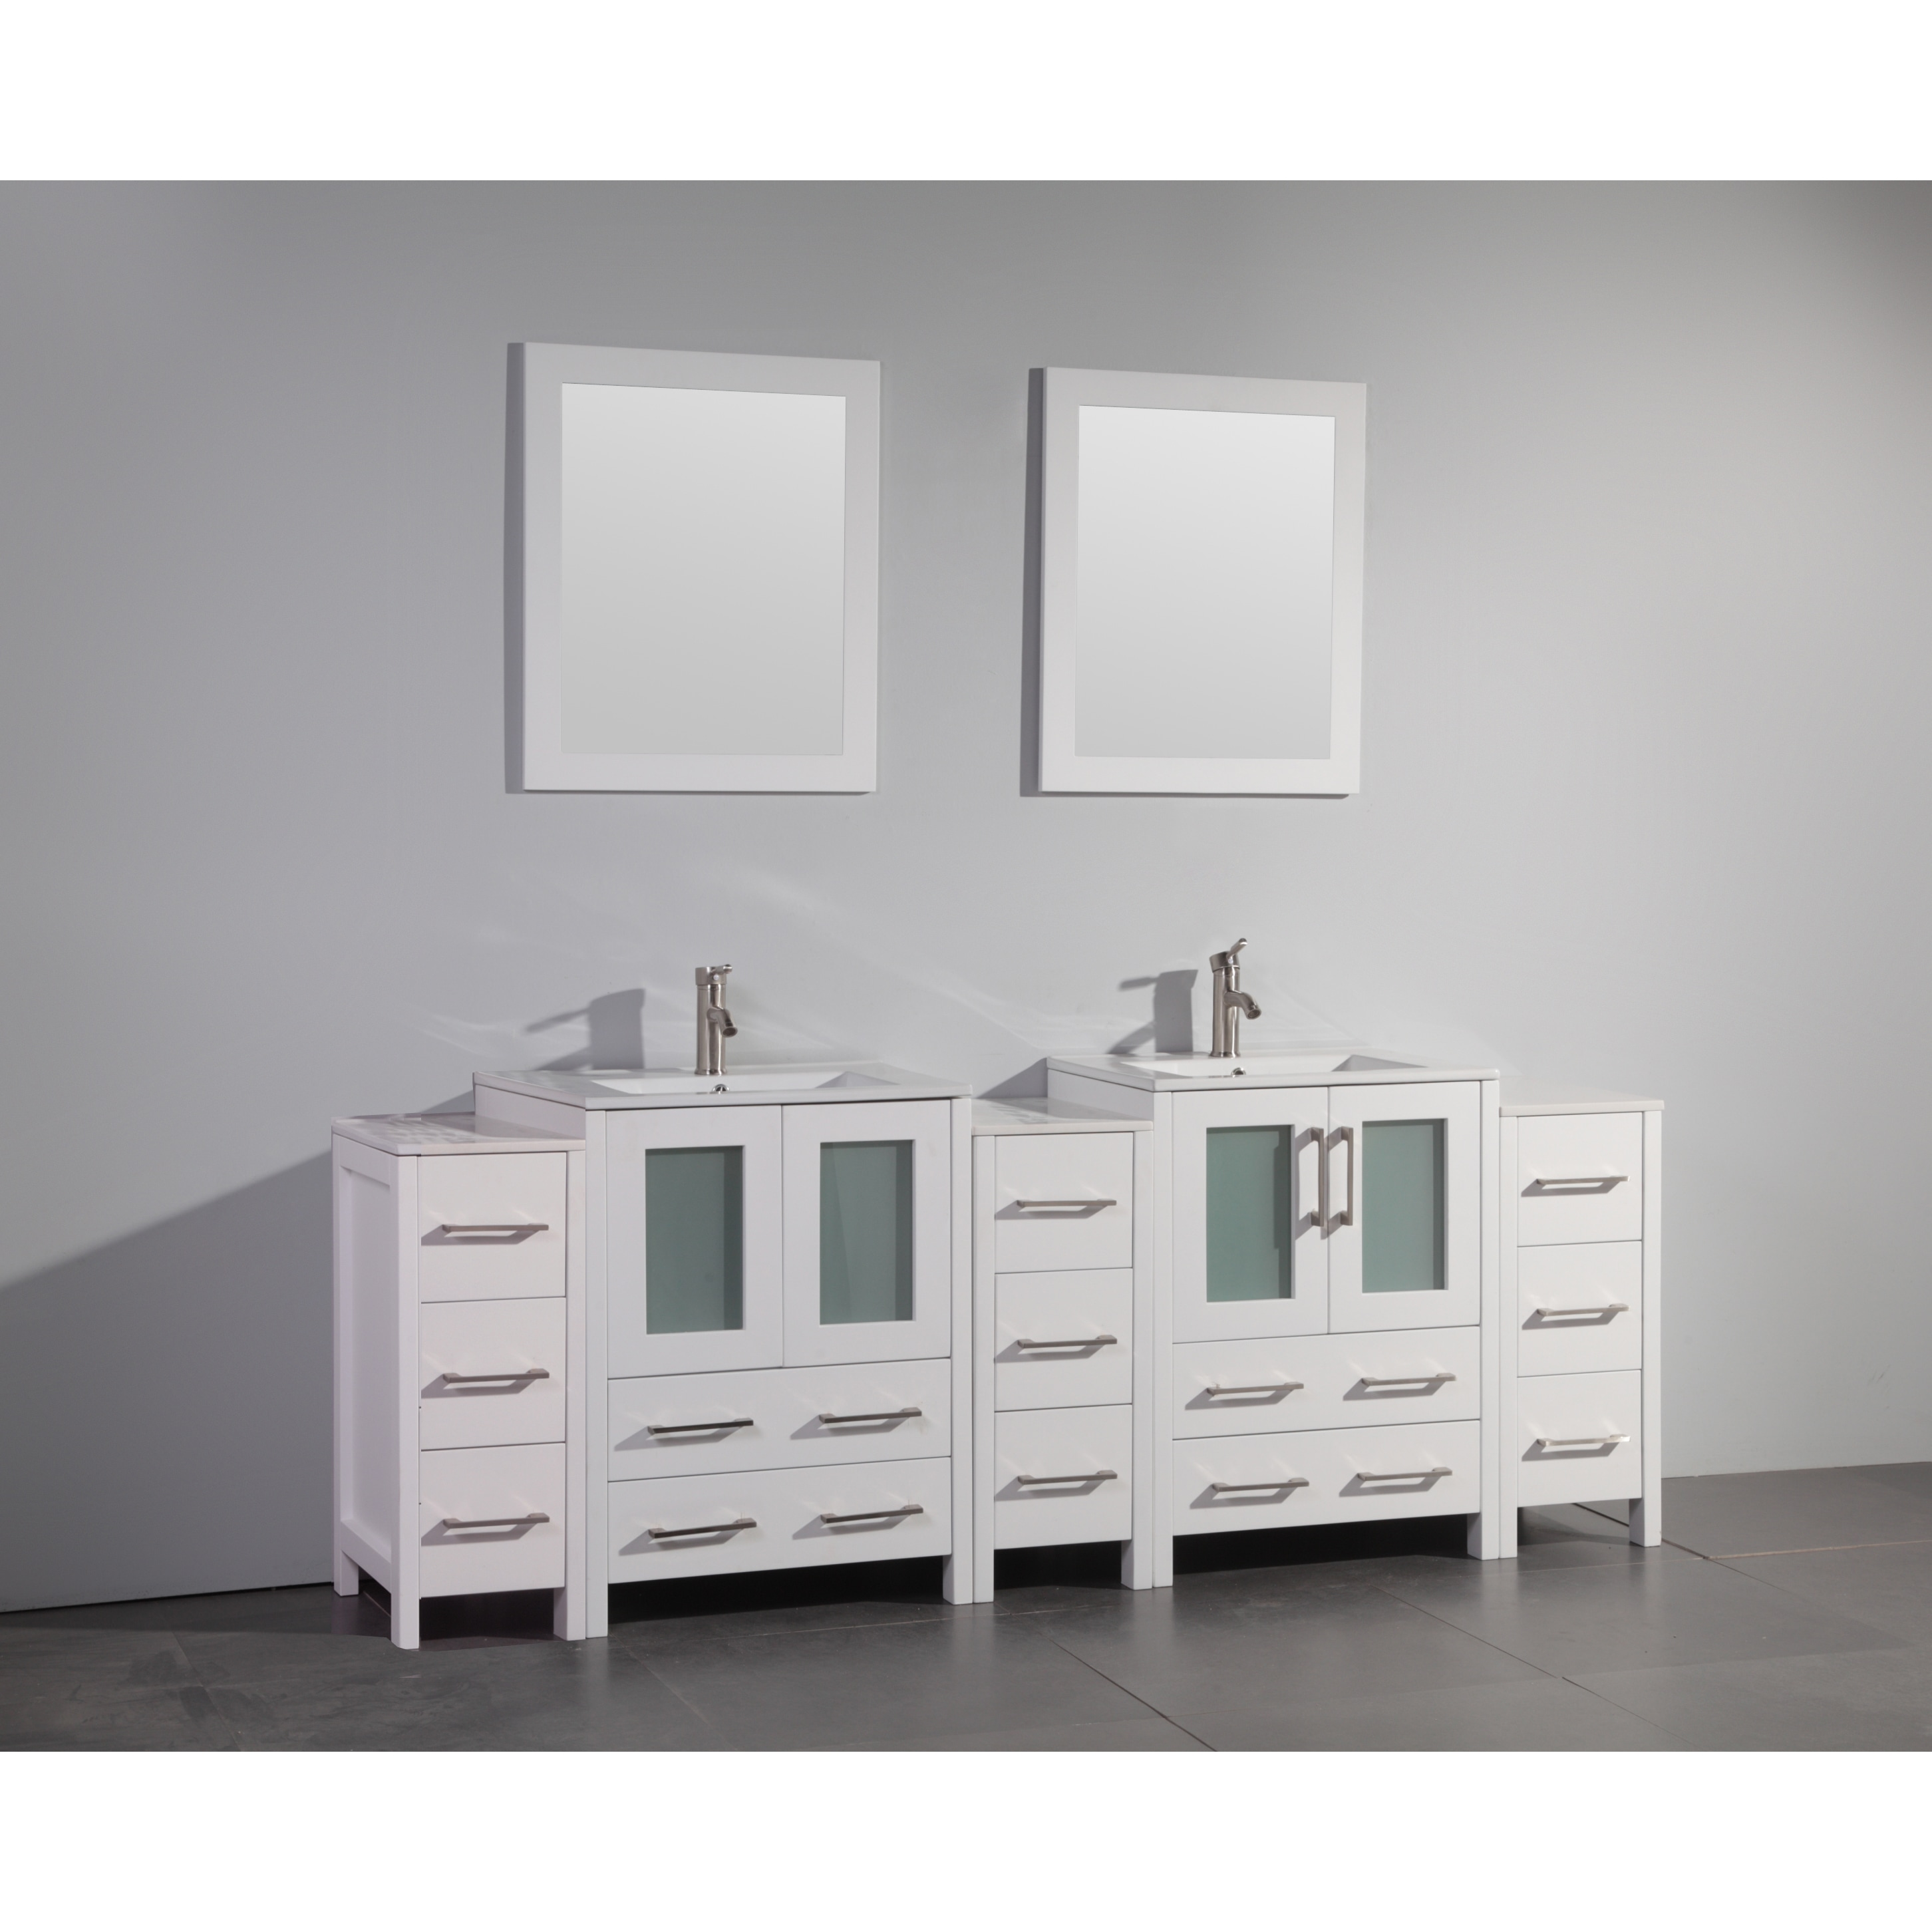 84 inch vanity top double sink. 84 Inch Vanity Top Double Sink Compare Prices At Nextag Cool Photos  Best inspiration home